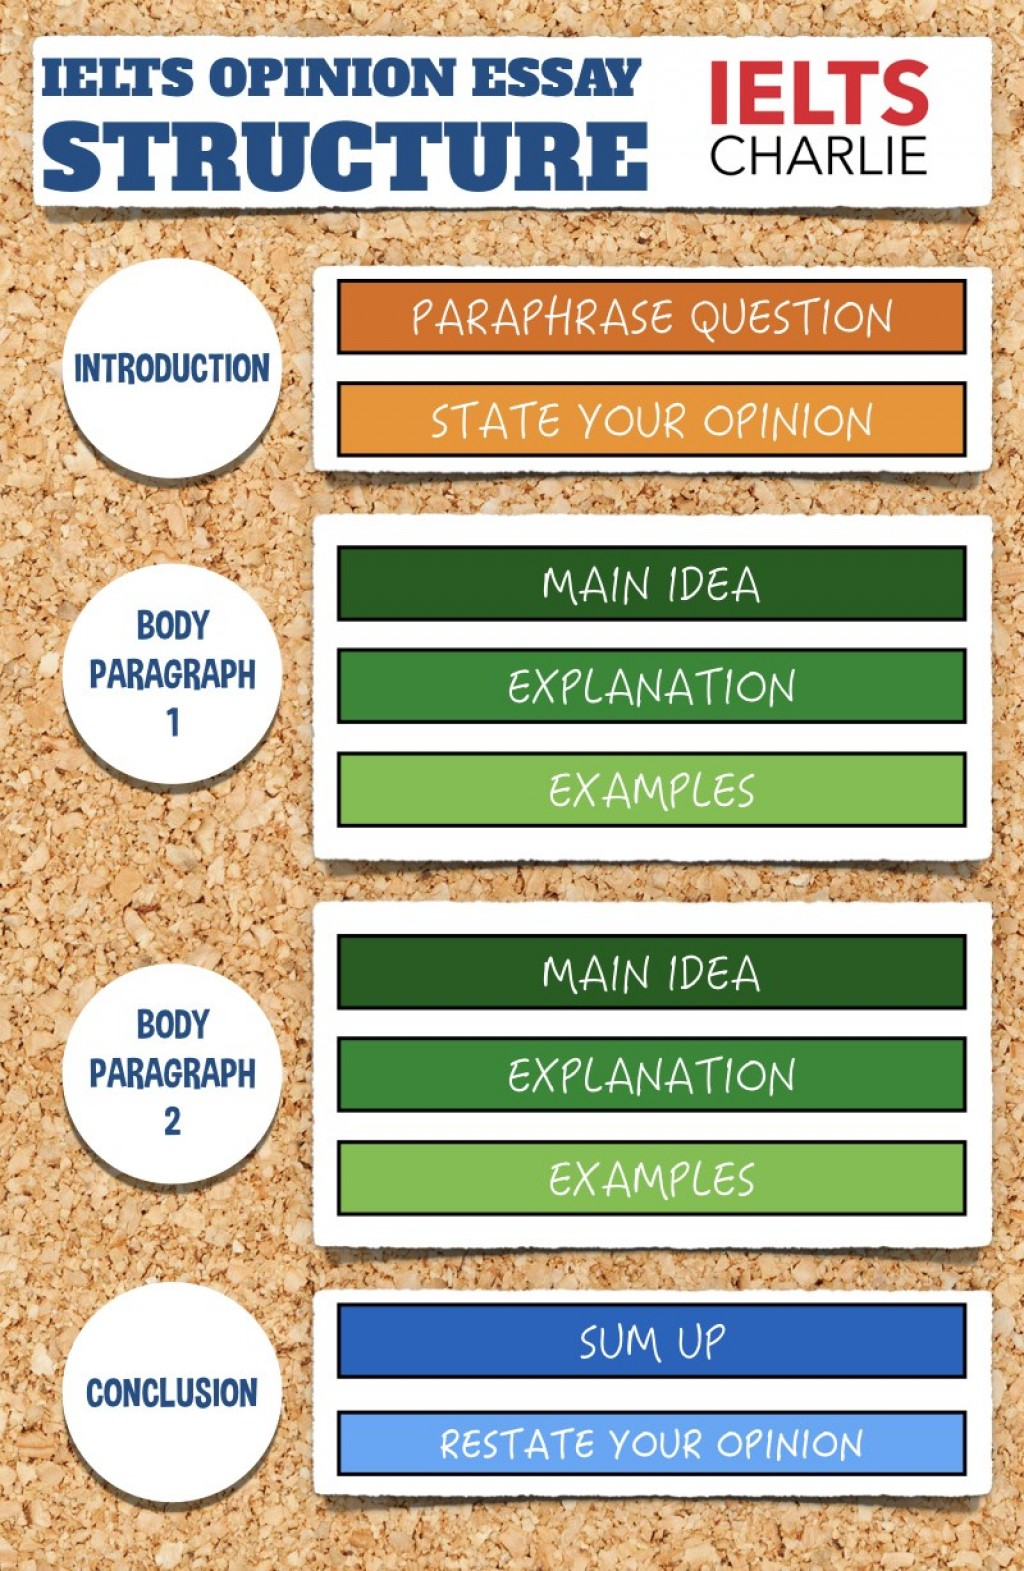 014 Essay Structure Types Essaystructure Incredible Pdf Organizational Large